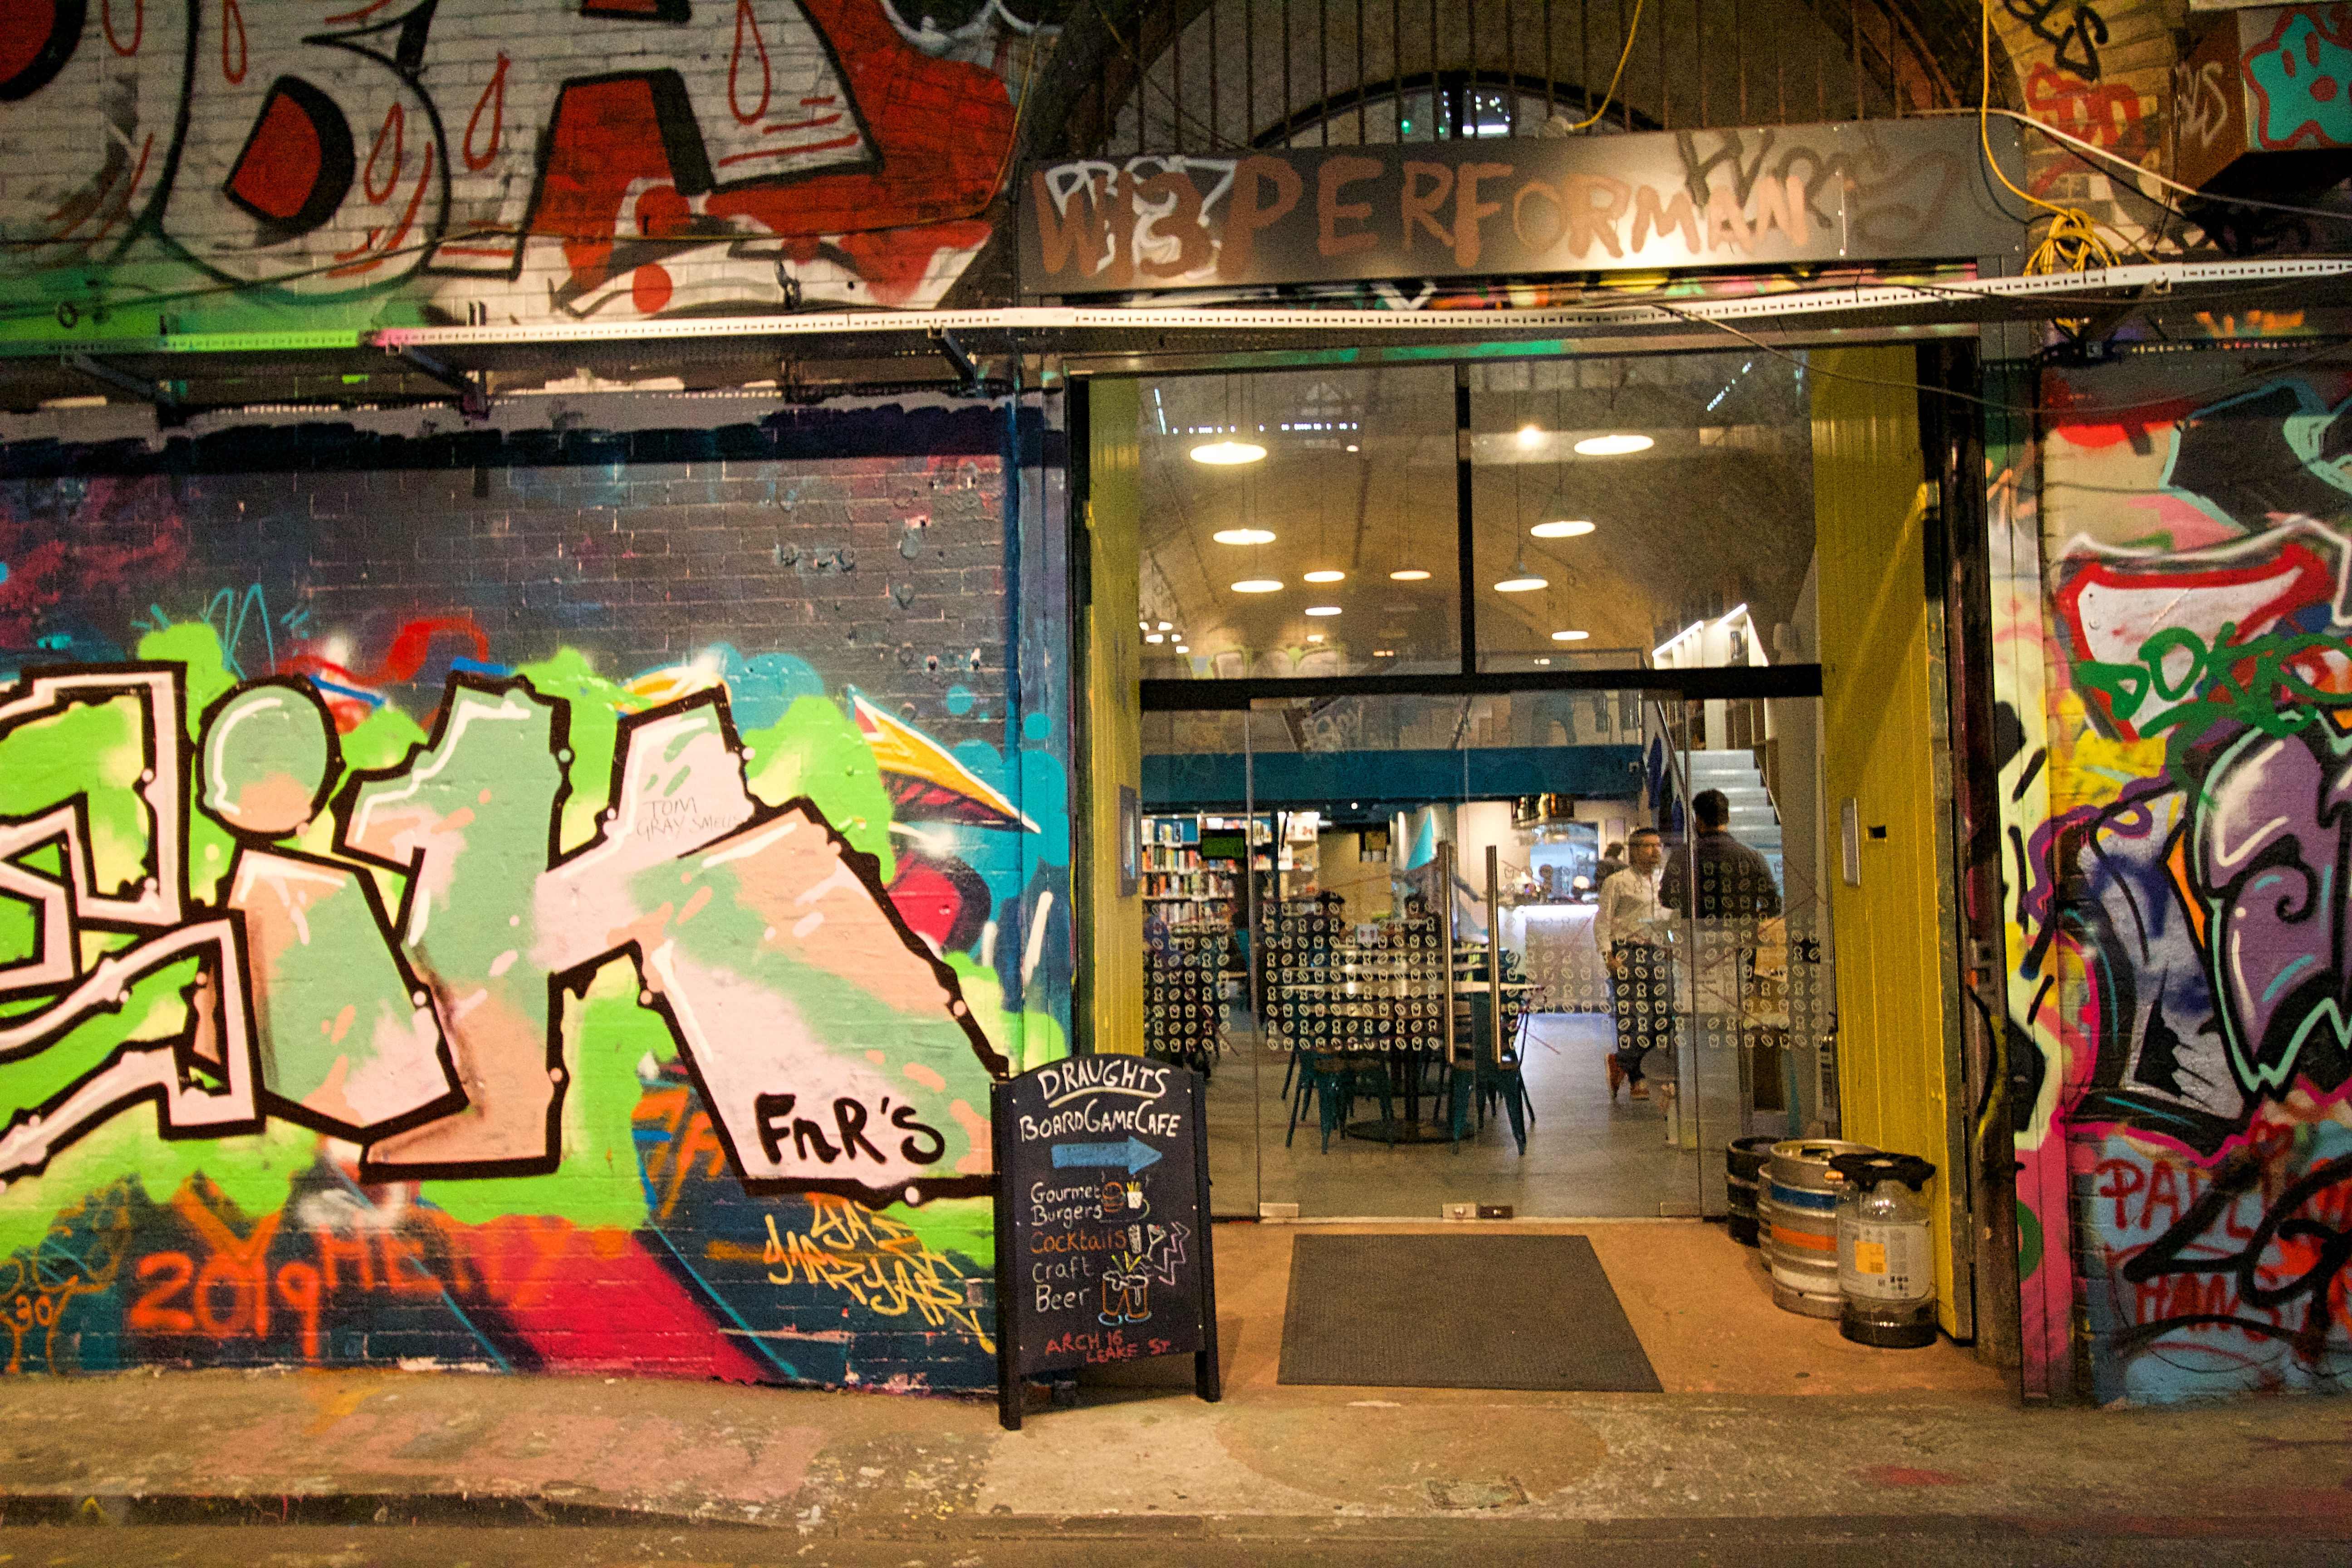 The Draughts Cafe, Leake Street